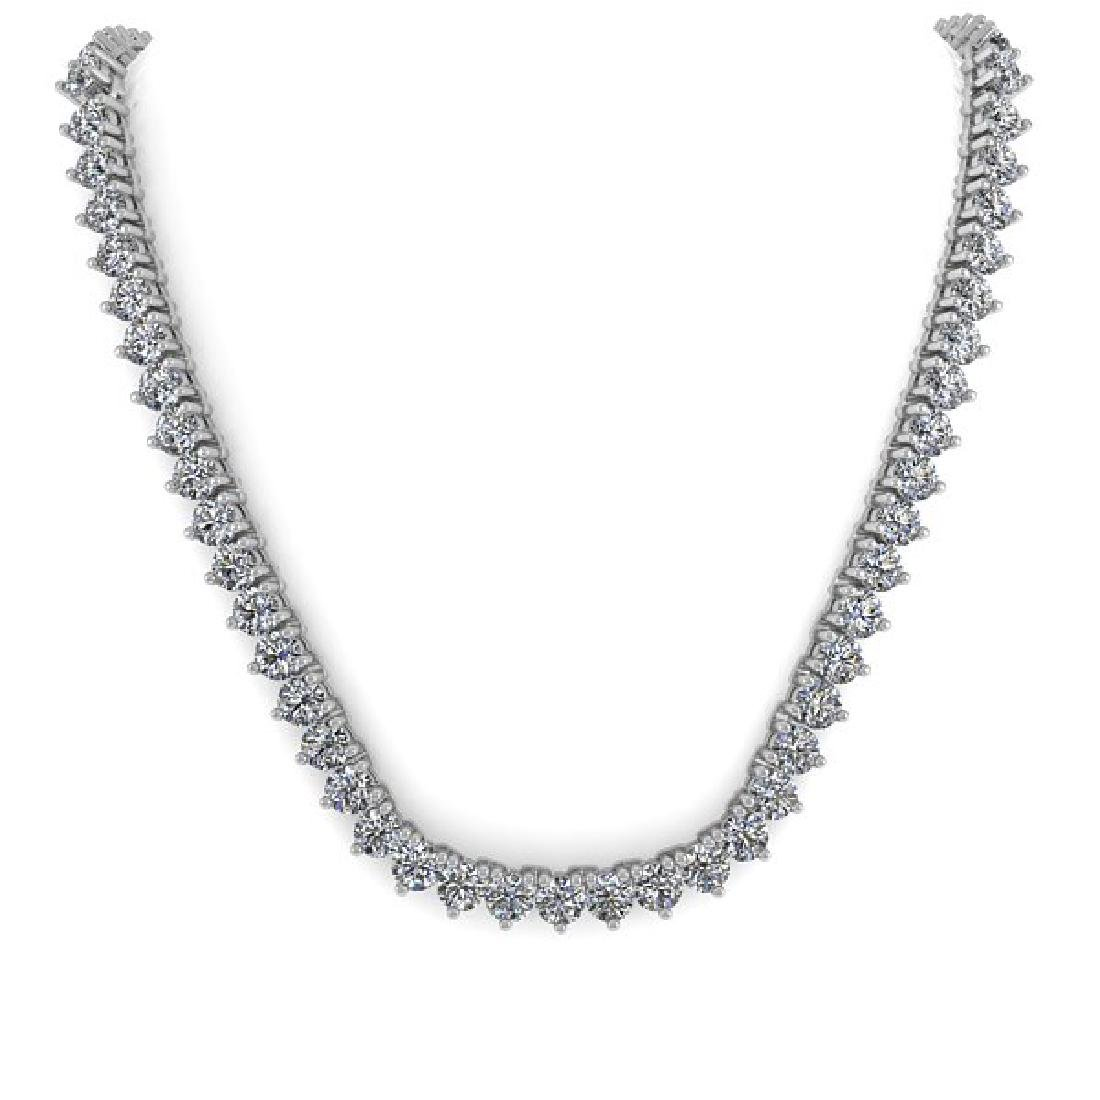 68 CTW Solitaire Certified SI Diamond Necklace 18K - 3